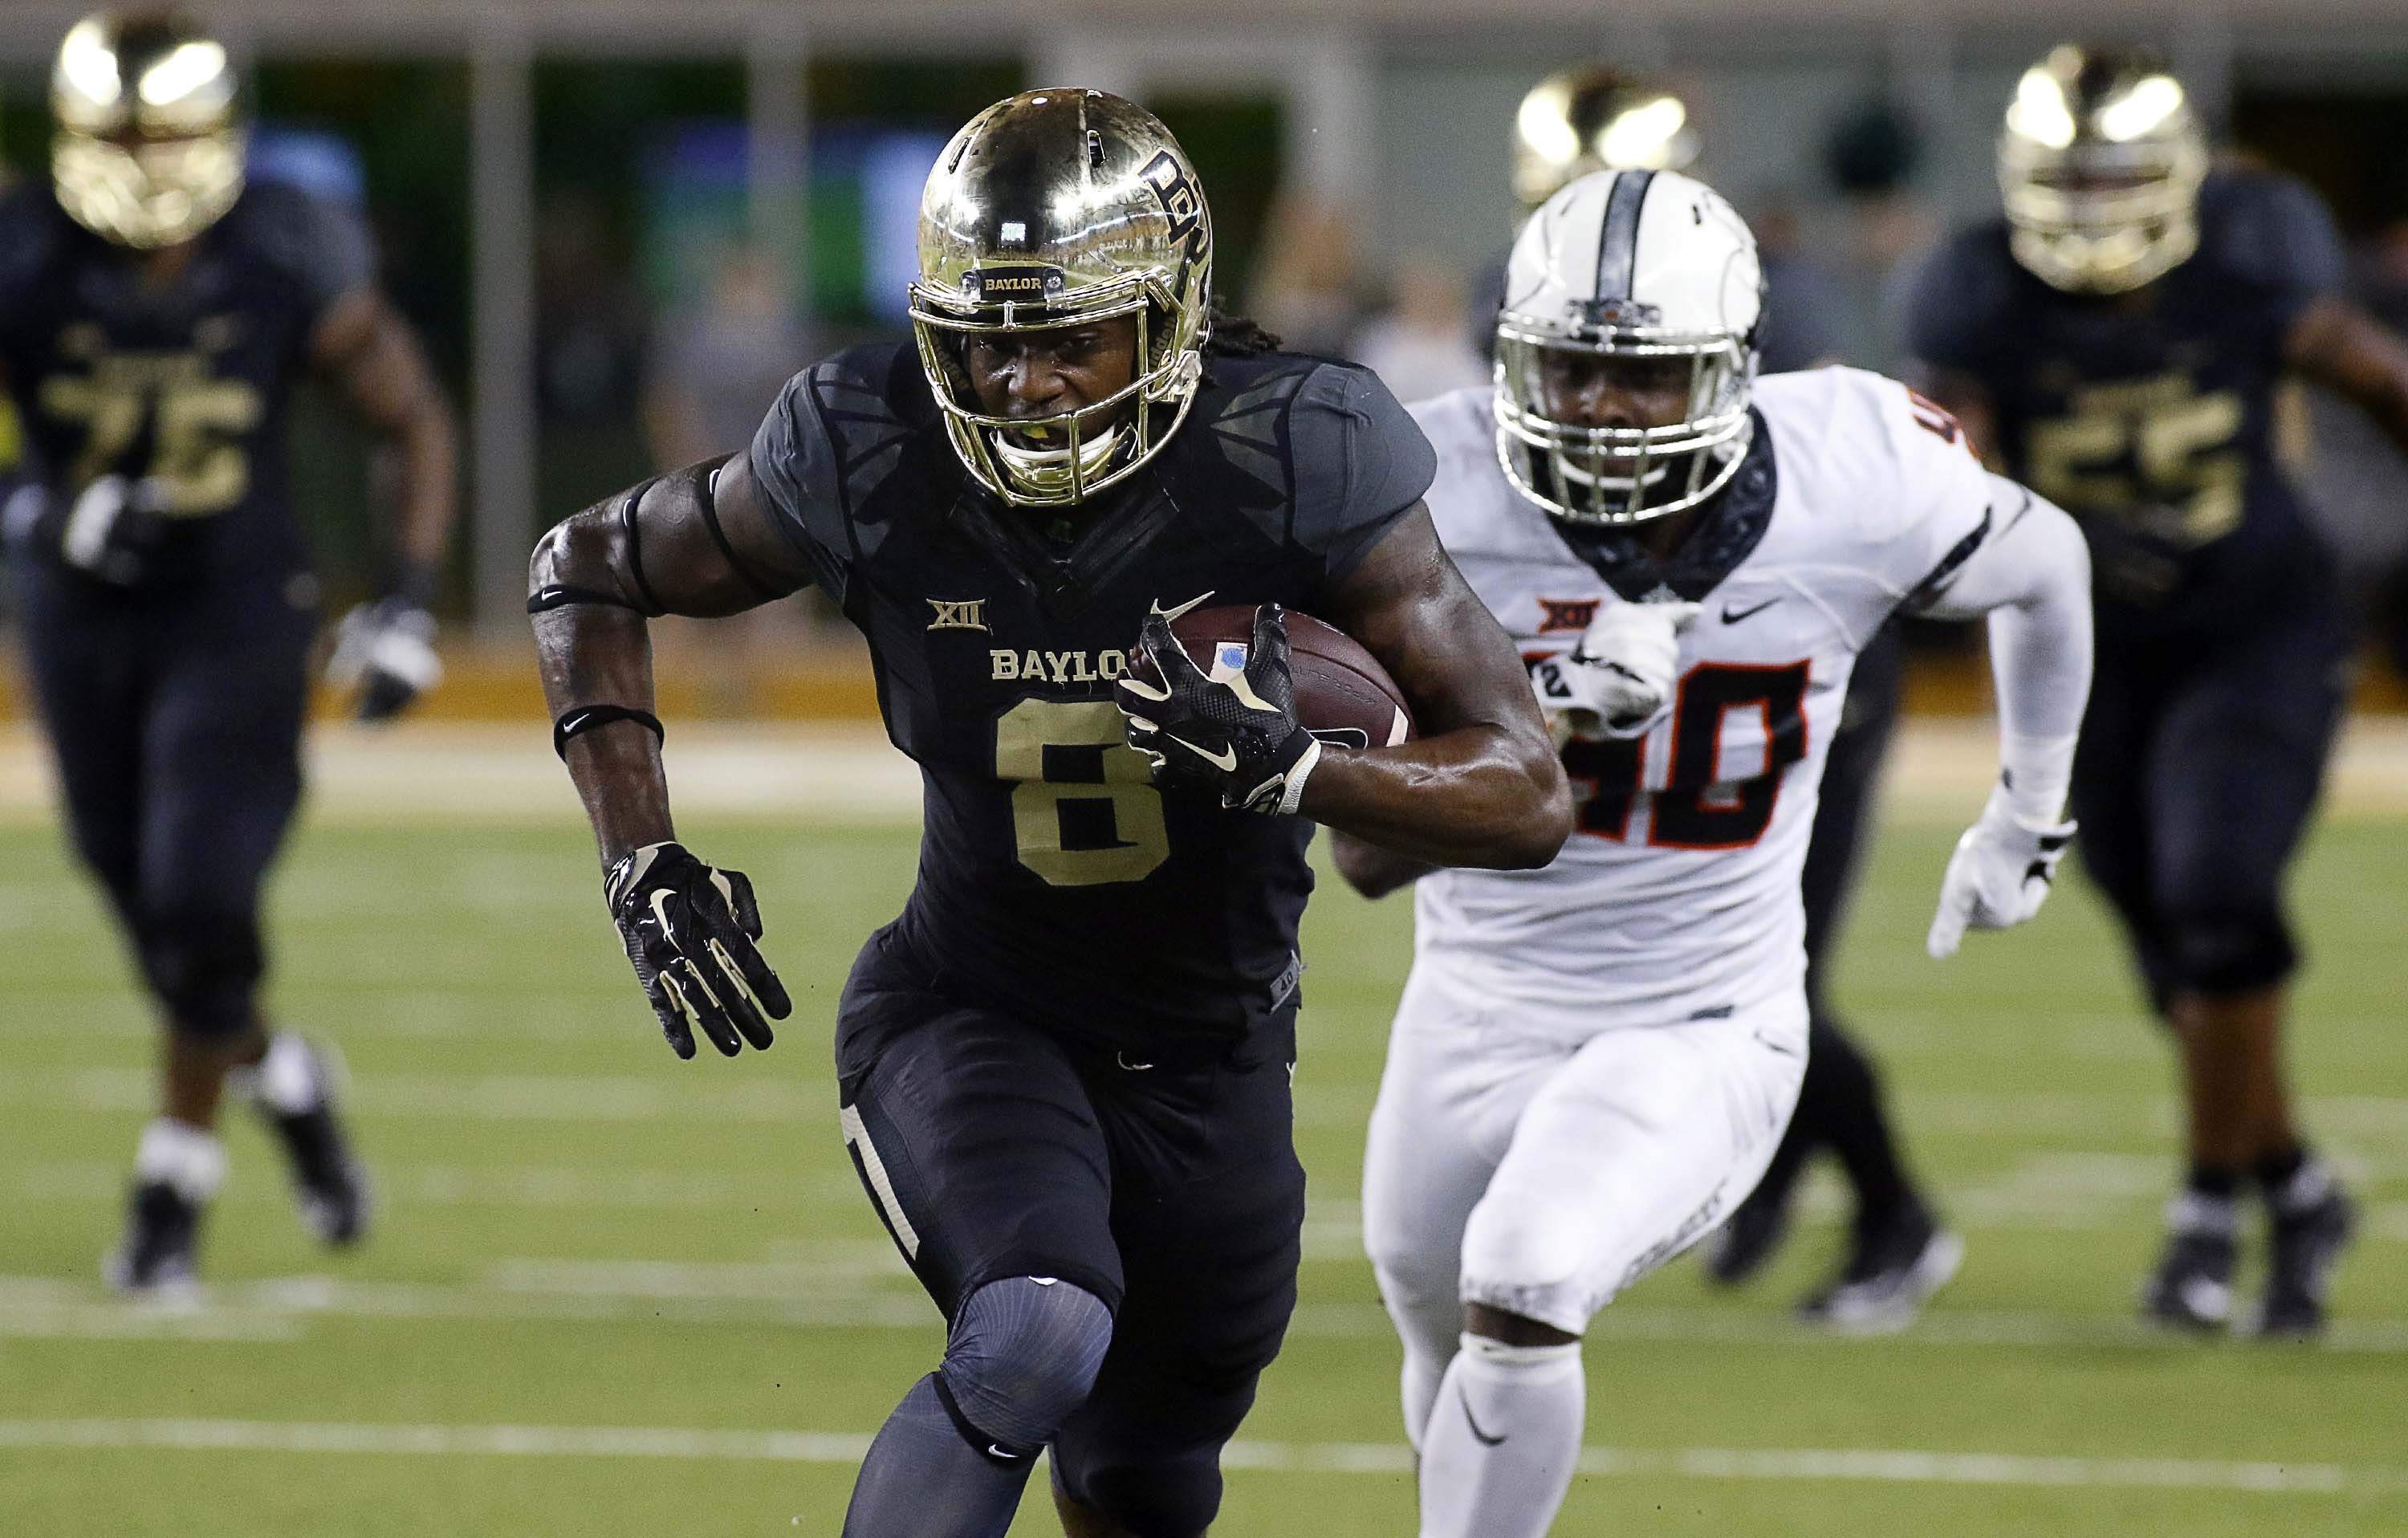 2017 Nfl Draft One Undrafted Free Agent Who Will Make Each Team S 53 Man Roster